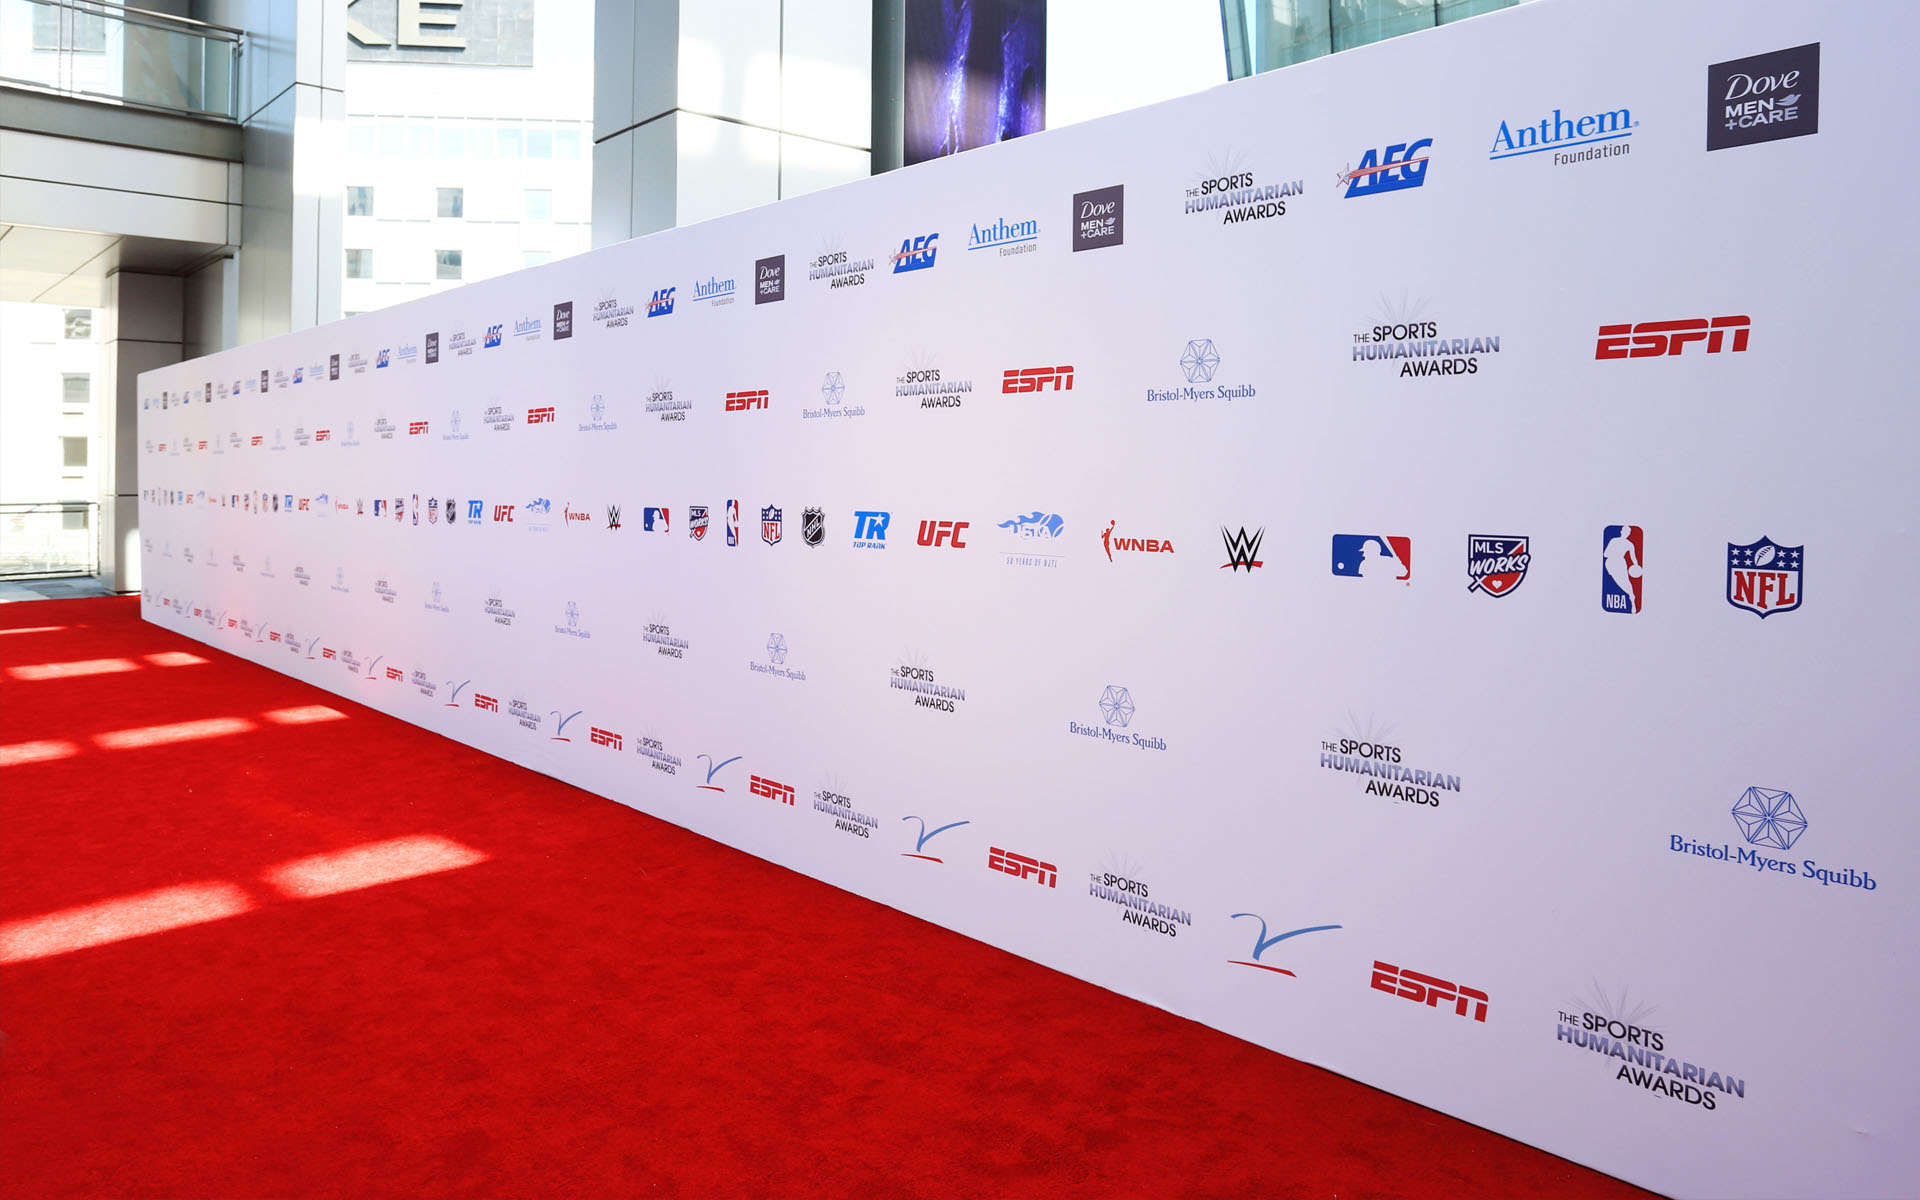 ESPN SPORTS HUMANITARIAN AWARDS